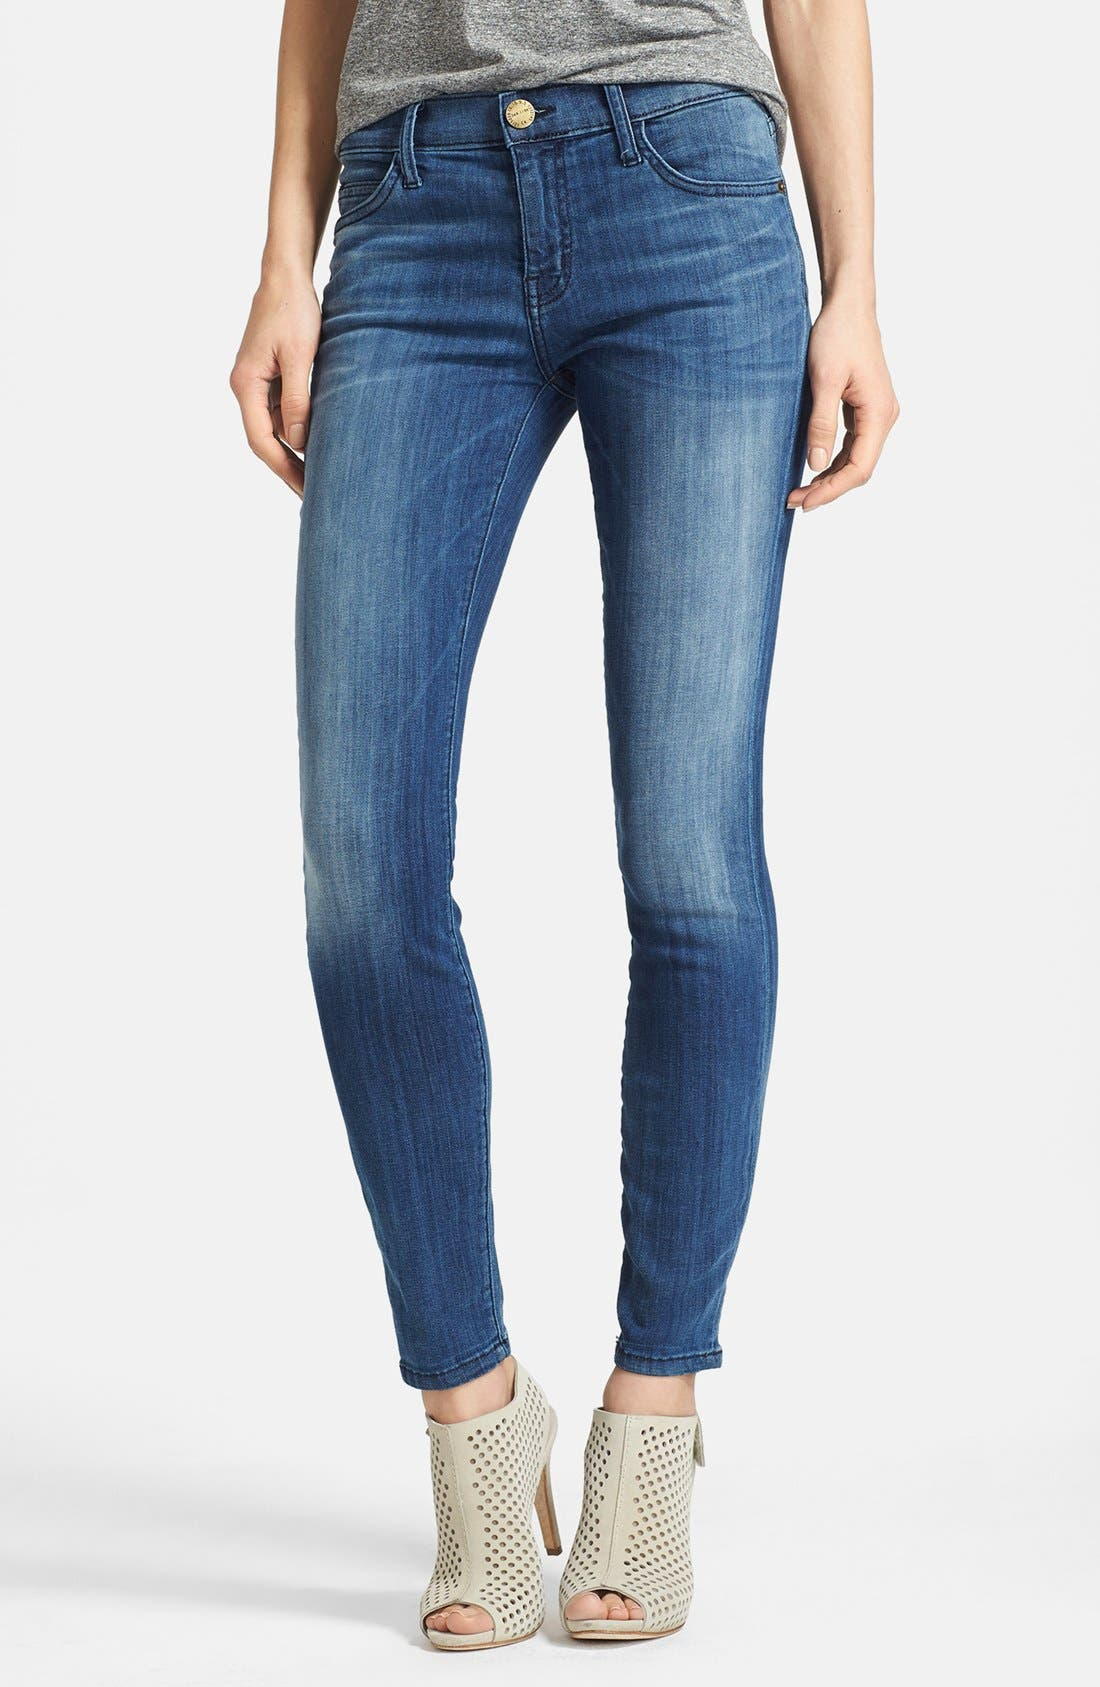 Main Image - Current/Elliott 'The Stiletto' Skinny Jeans (Sunfade)